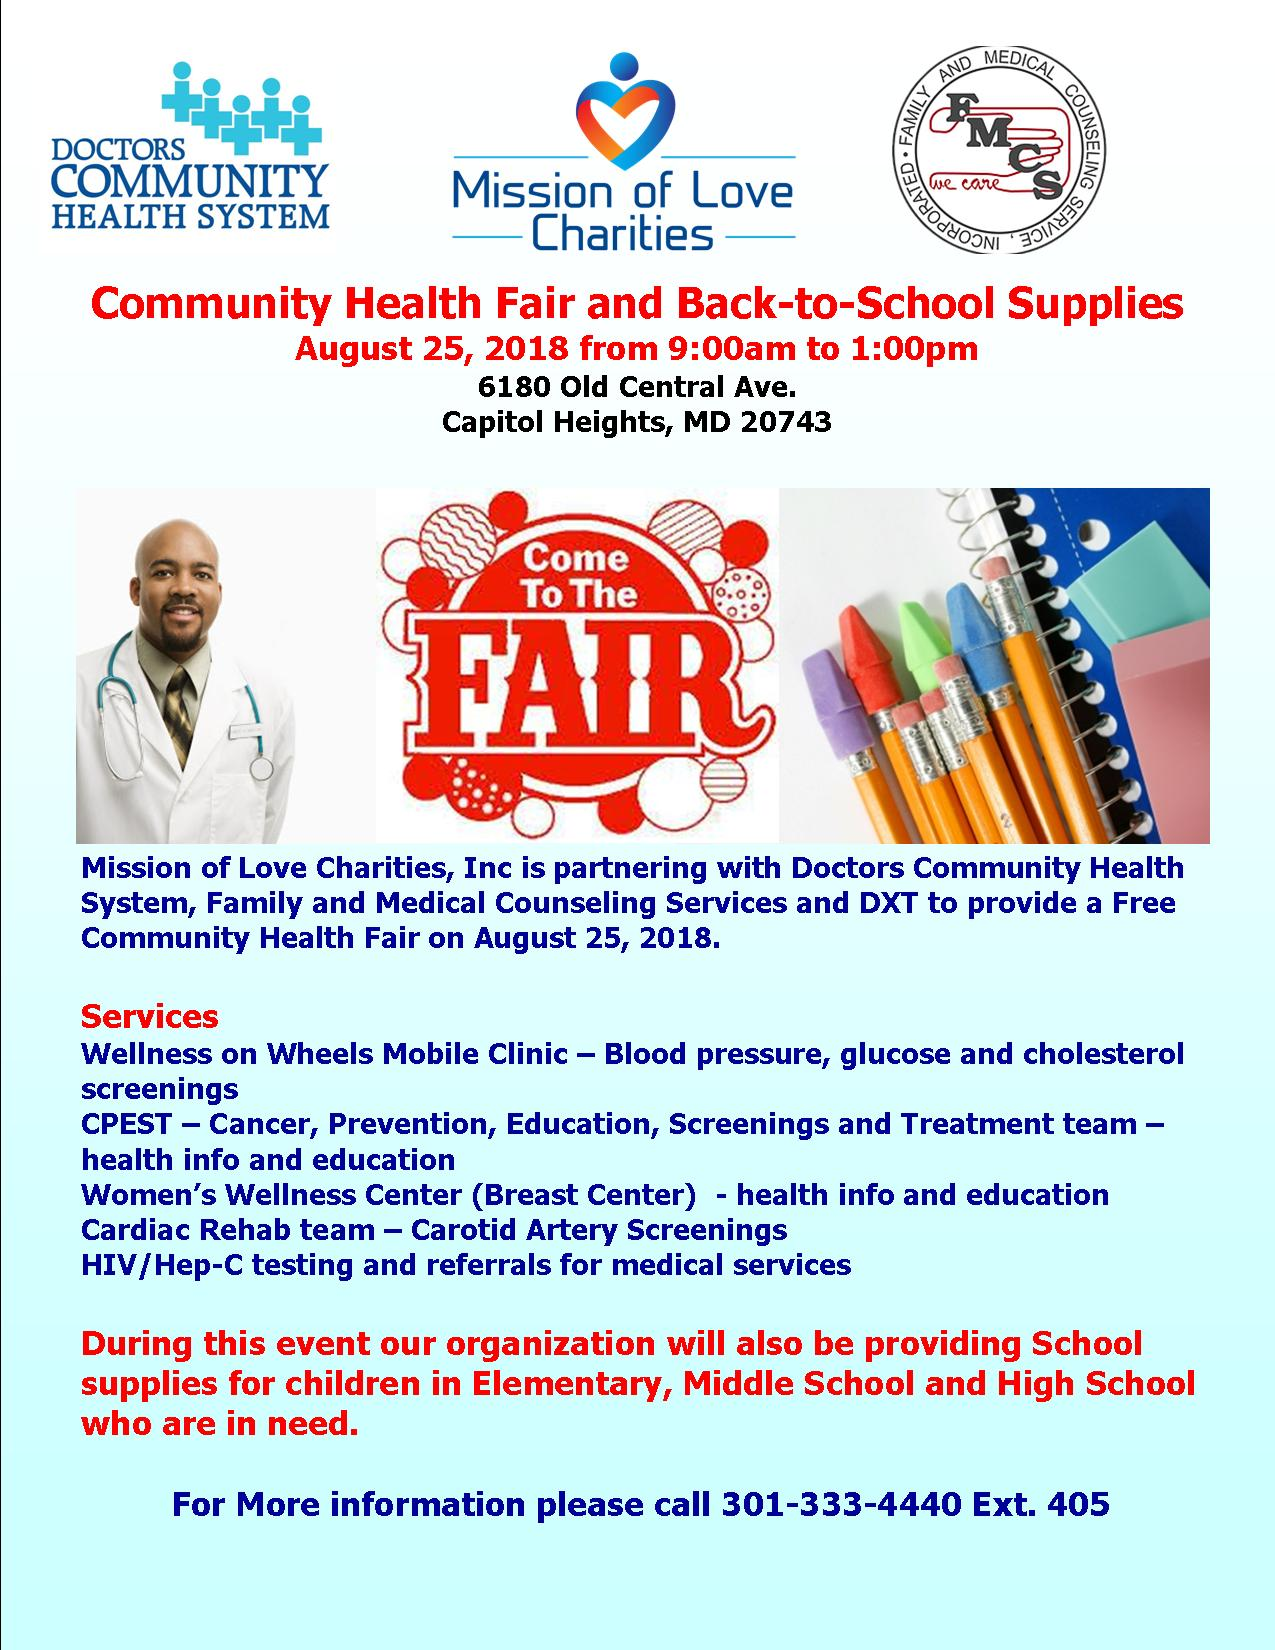 Free Health Fair Clinic August 25, 2018.jpg